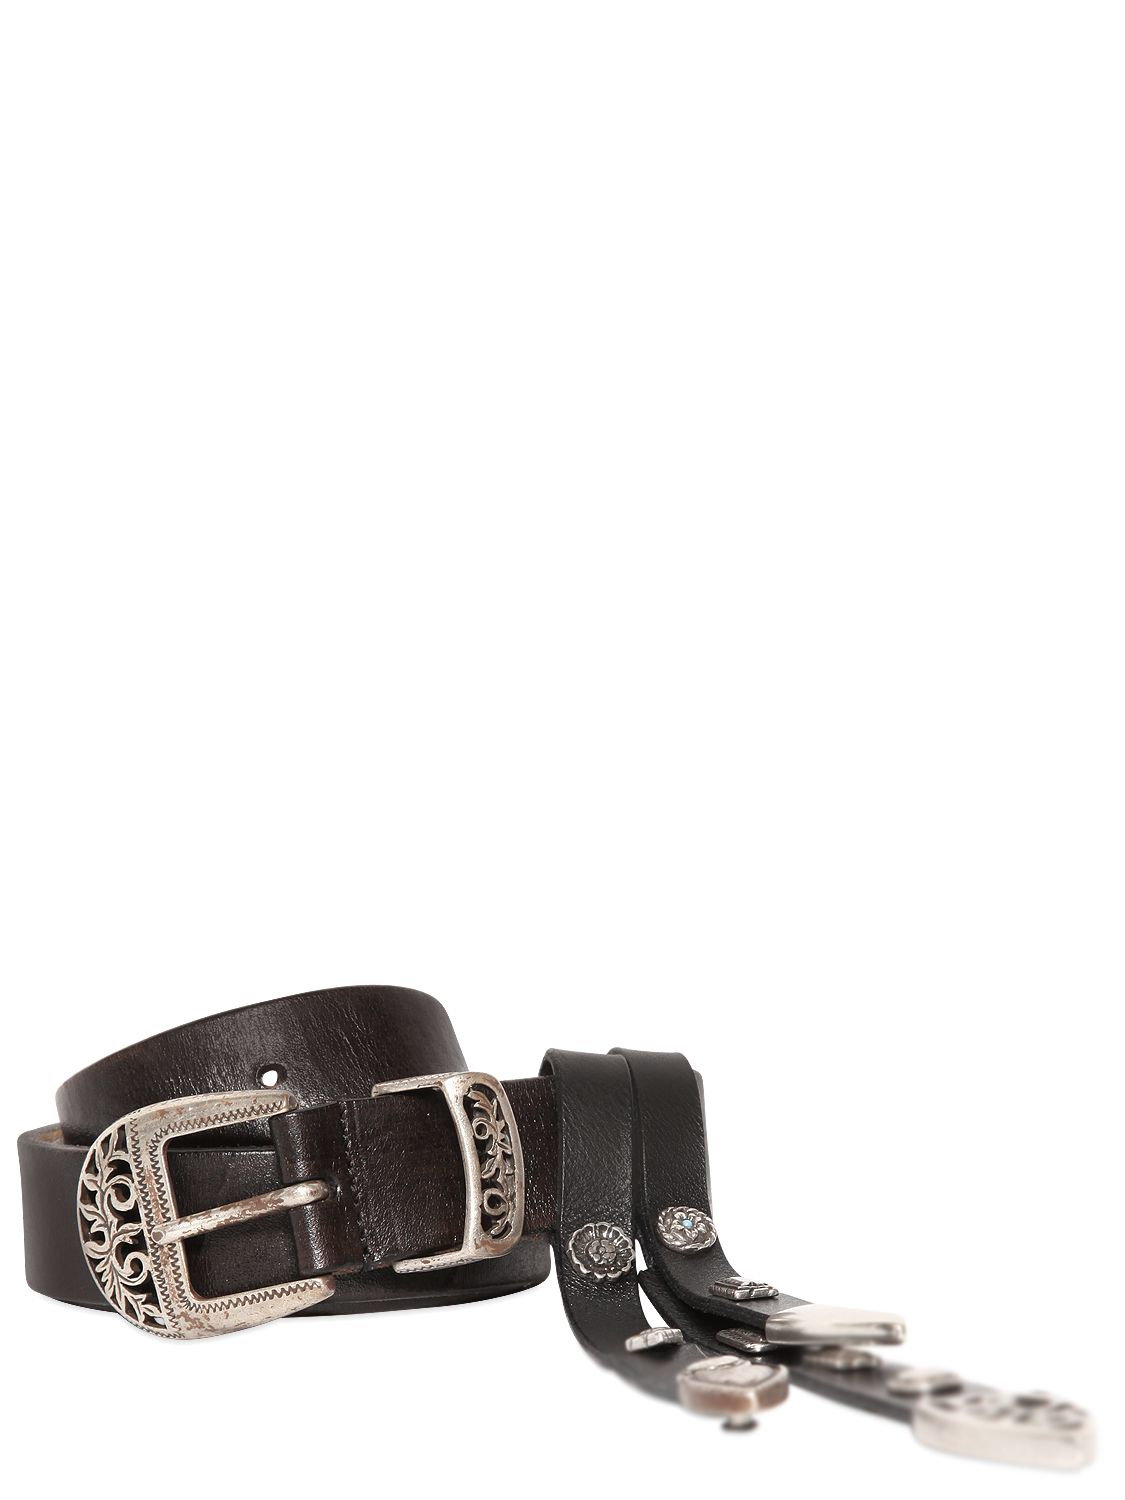 htc trading company smooth leather belt with